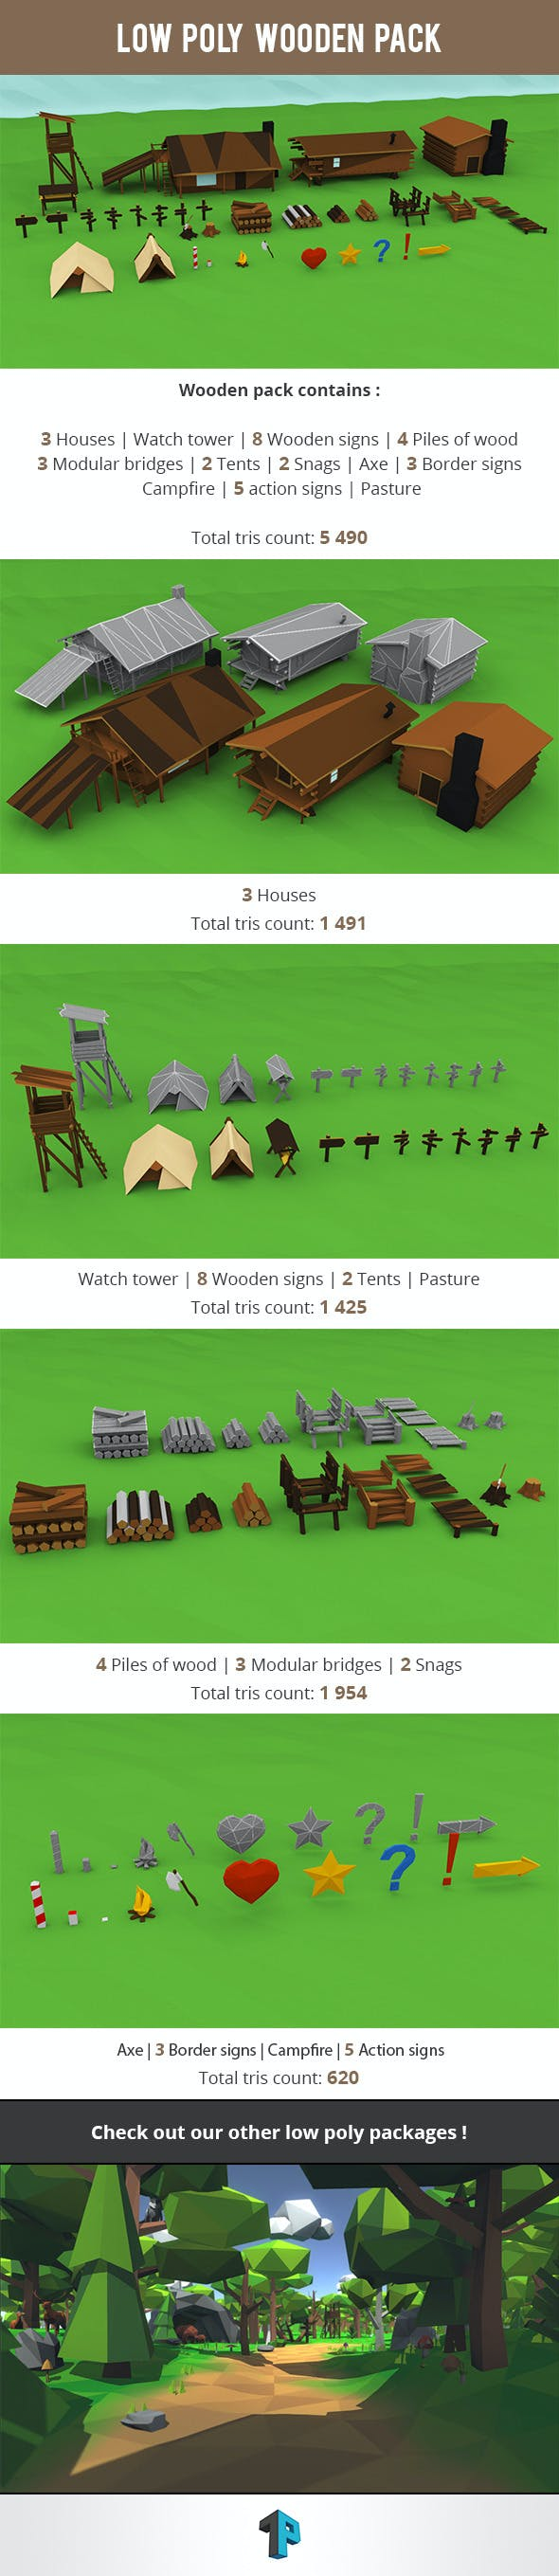 Low Poly Wooden Package - 3DOcean Item for Sale